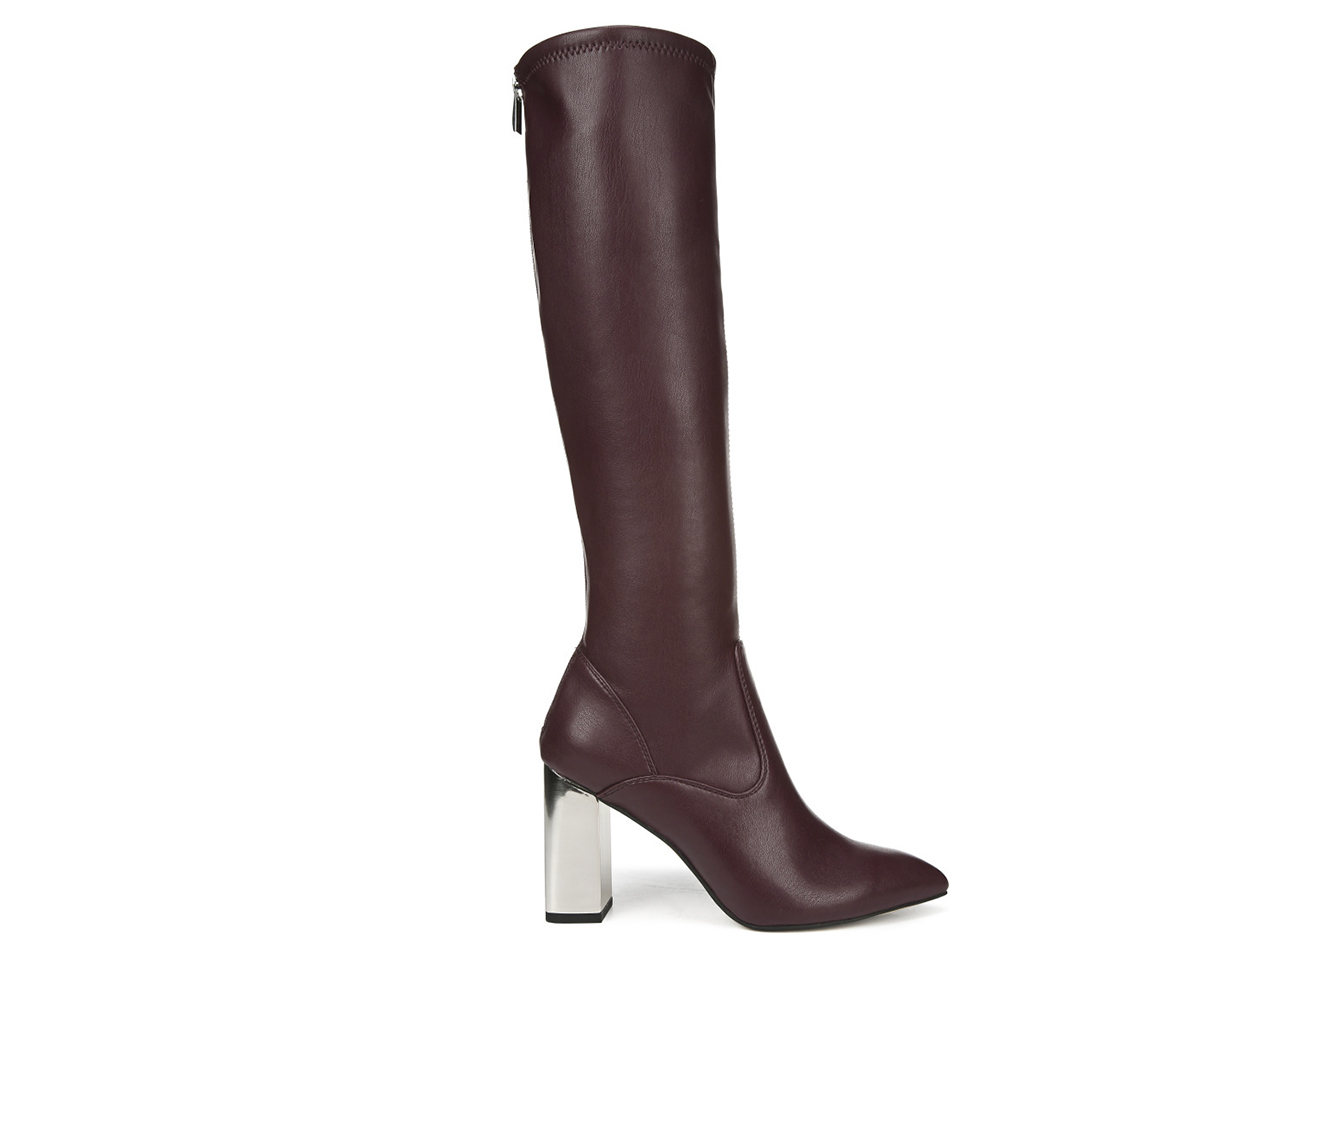 Franco Sarto Katherine Women's Boots (Red - Faux Leather)